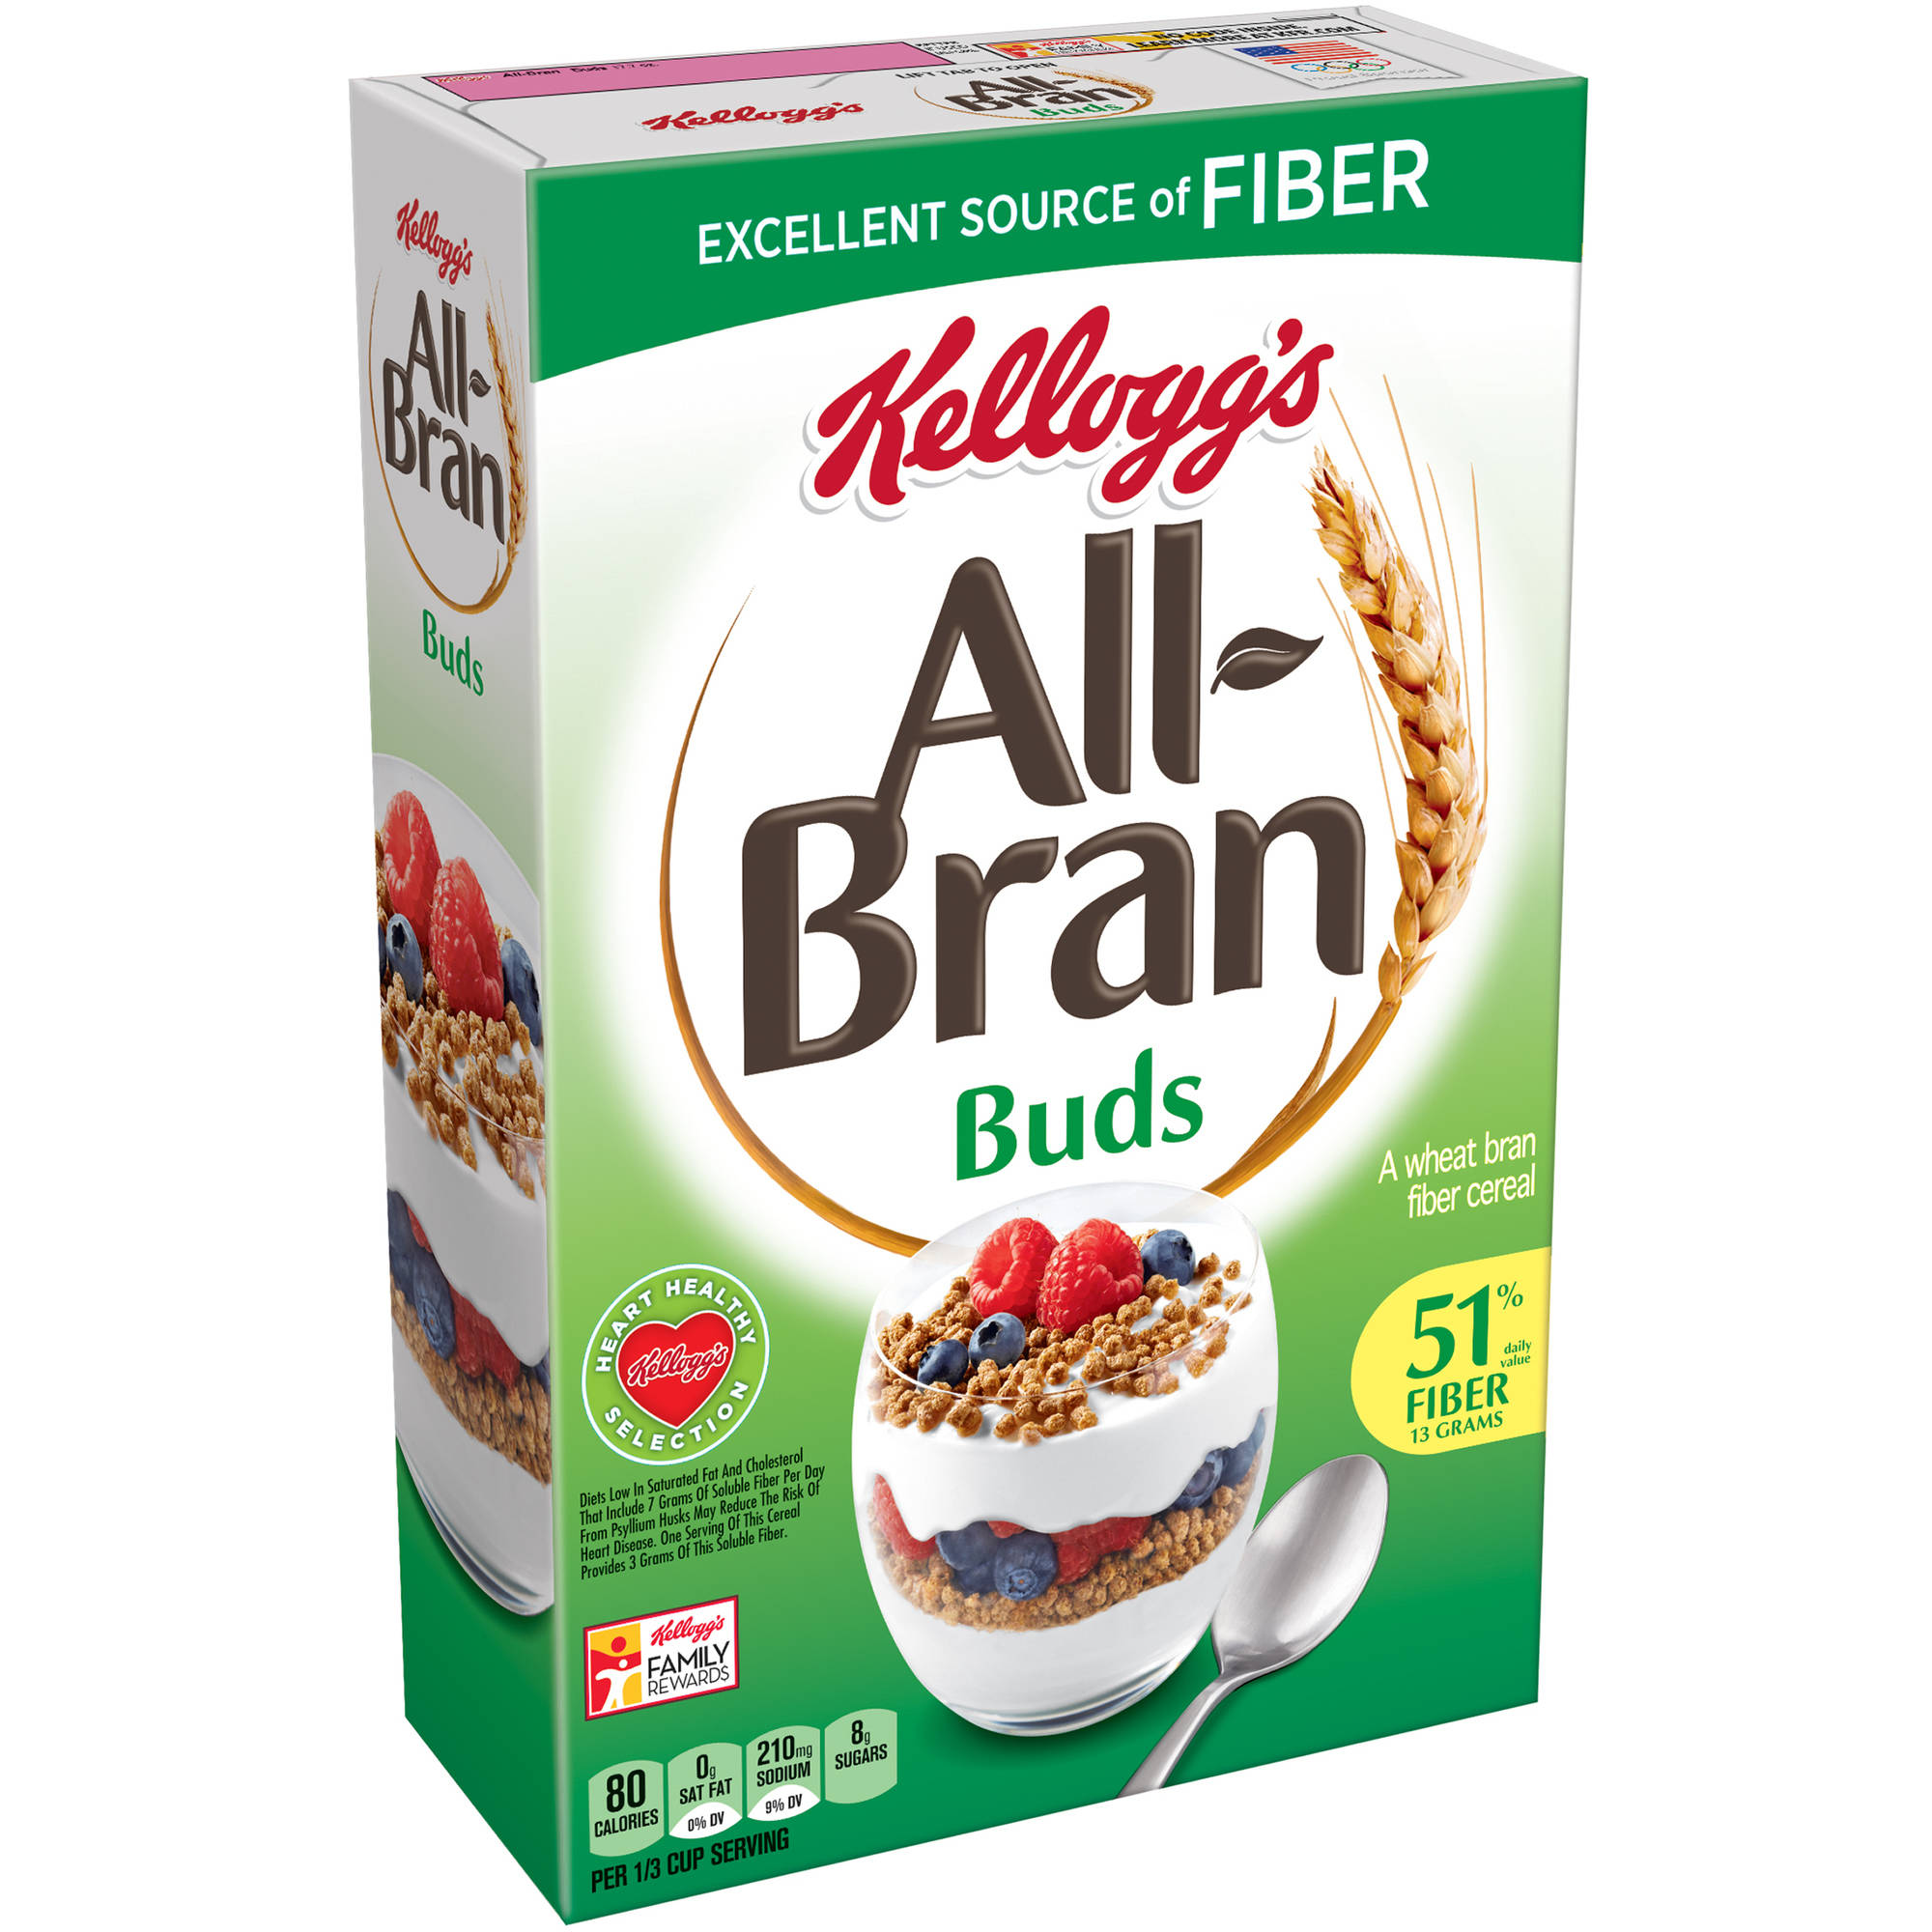 Kellogg's All-Bran Branbuds Value Size Cereal, 17.7 oz. Box